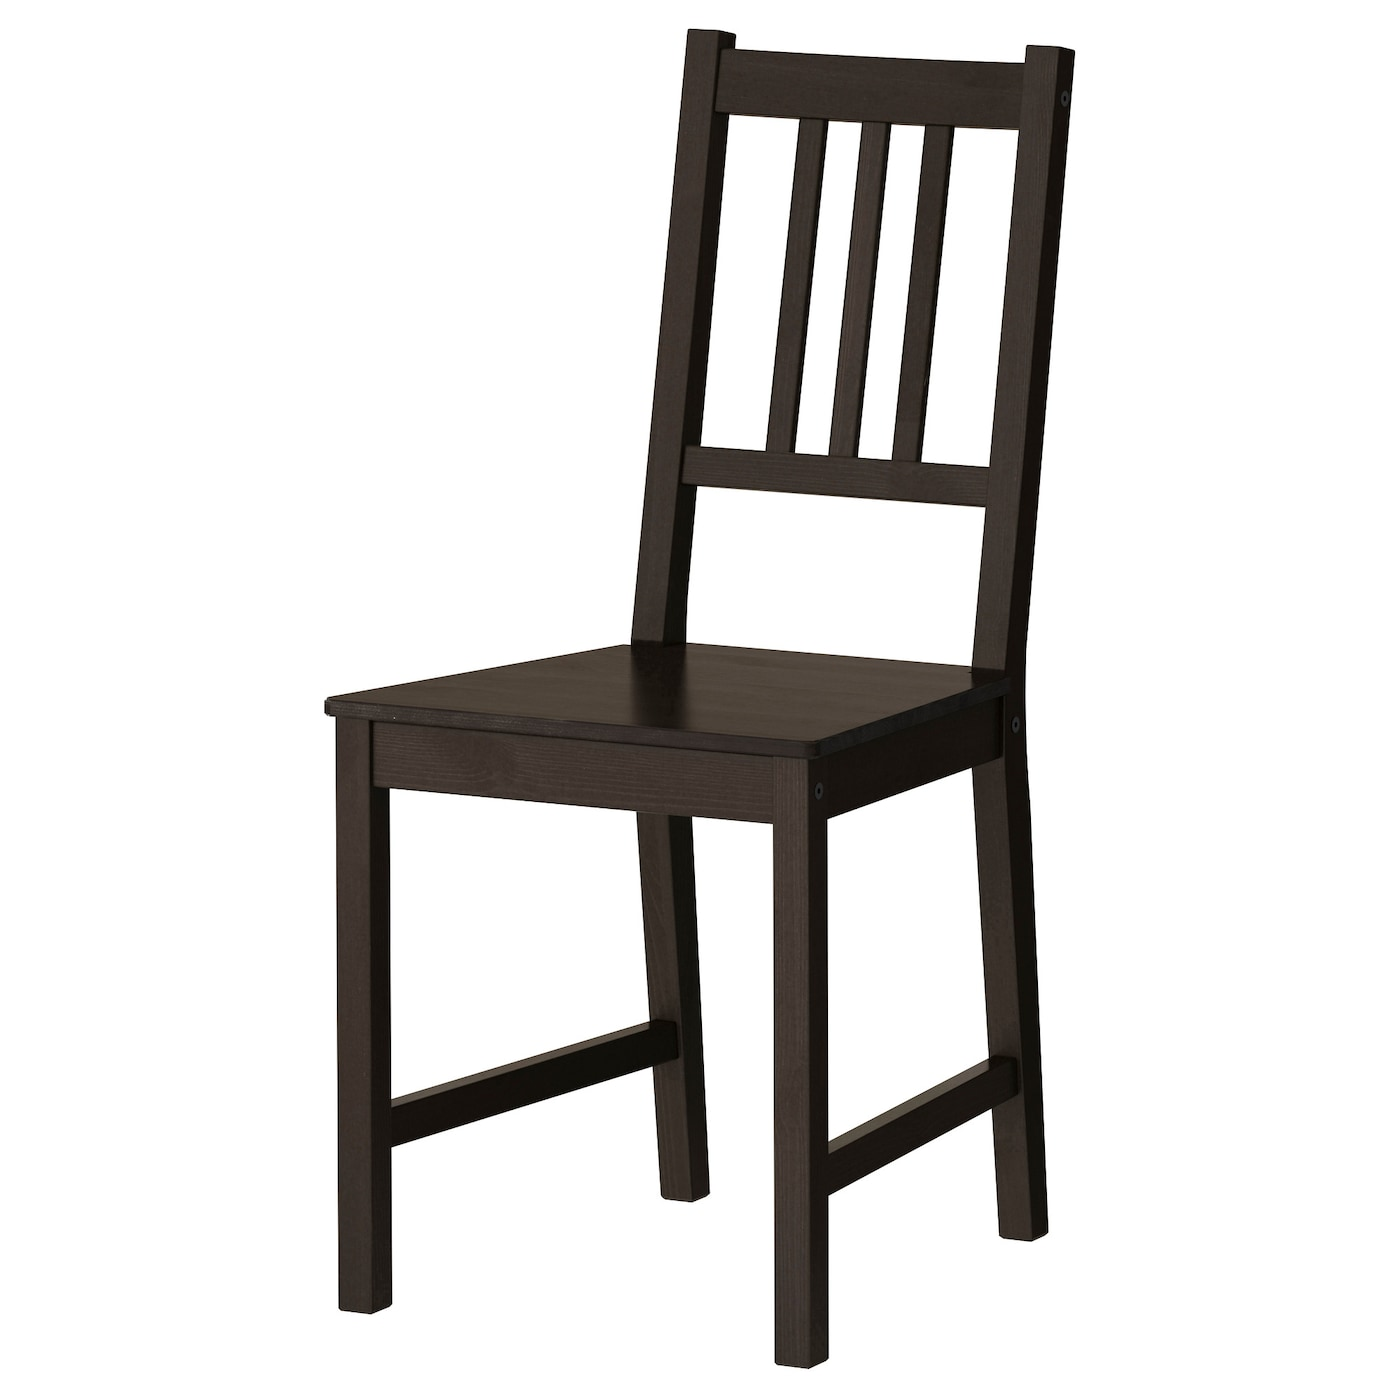 black furniture ikea. ikea stefan chair solid wood is a hardwearing natural material black furniture ikea